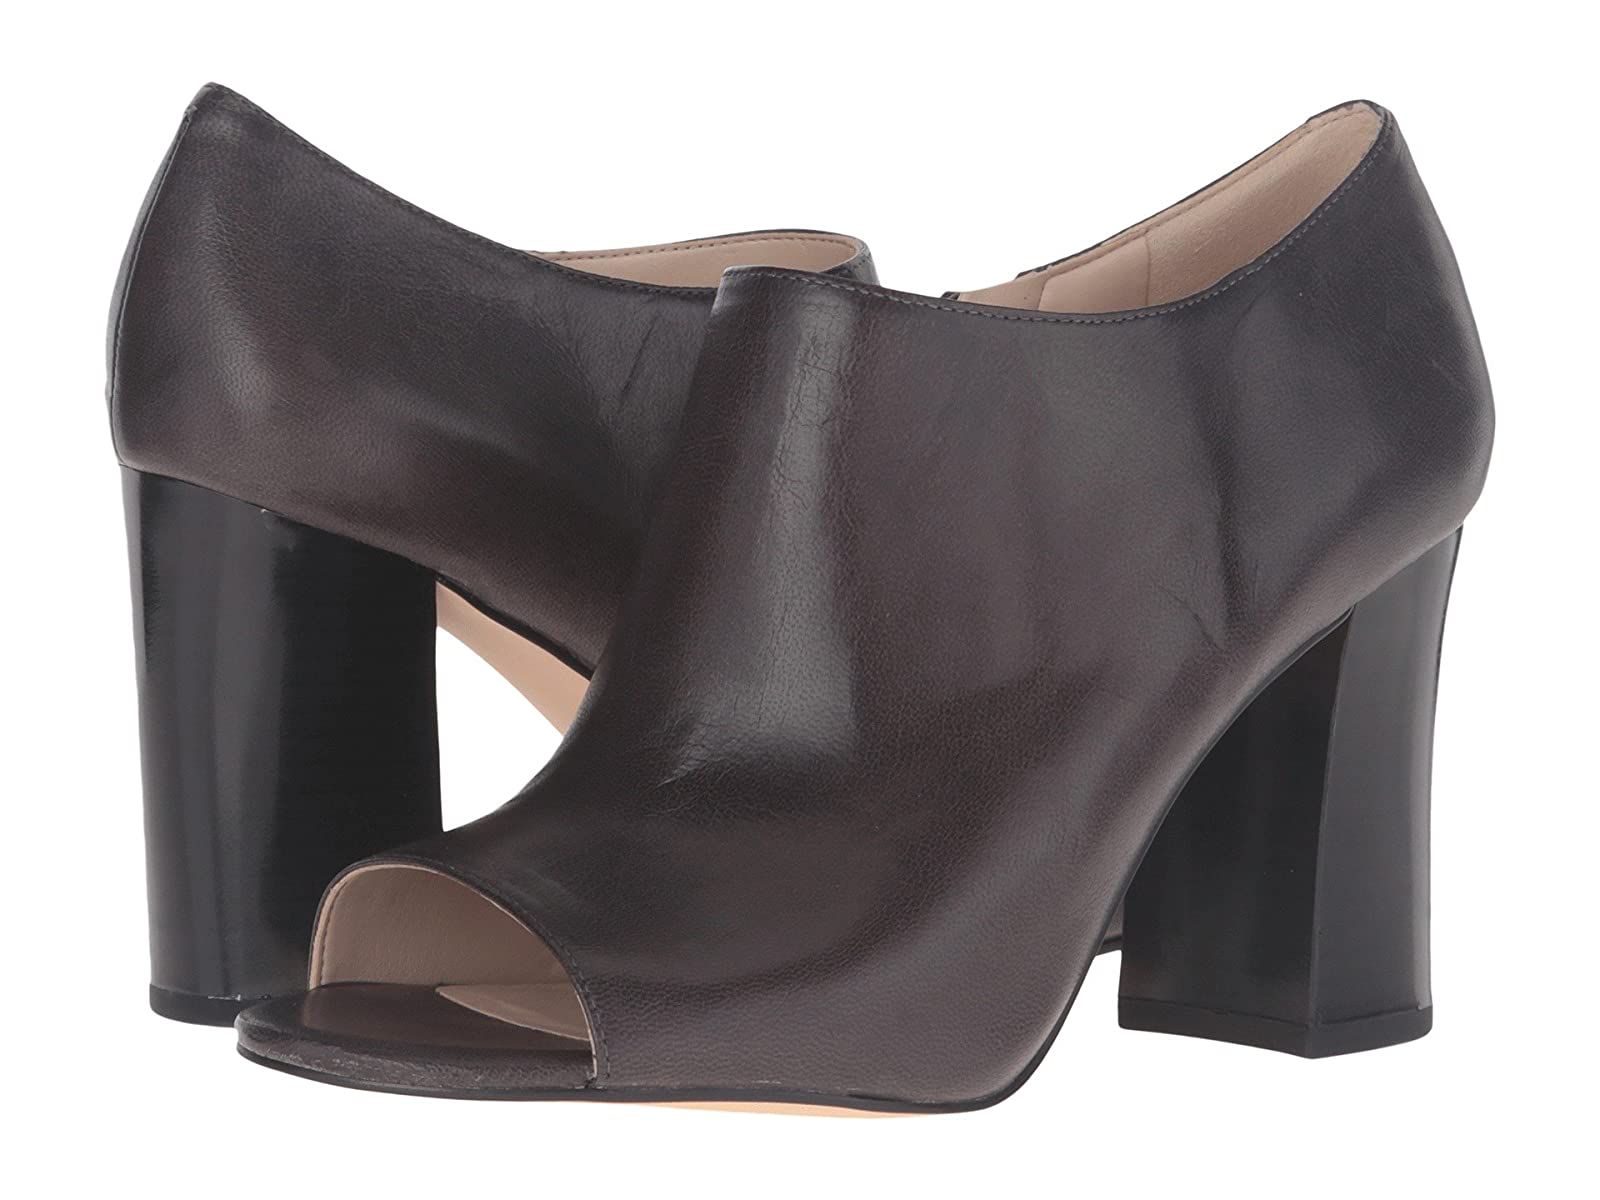 Nine West BrayahCheap and distinctive eye-catching shoes